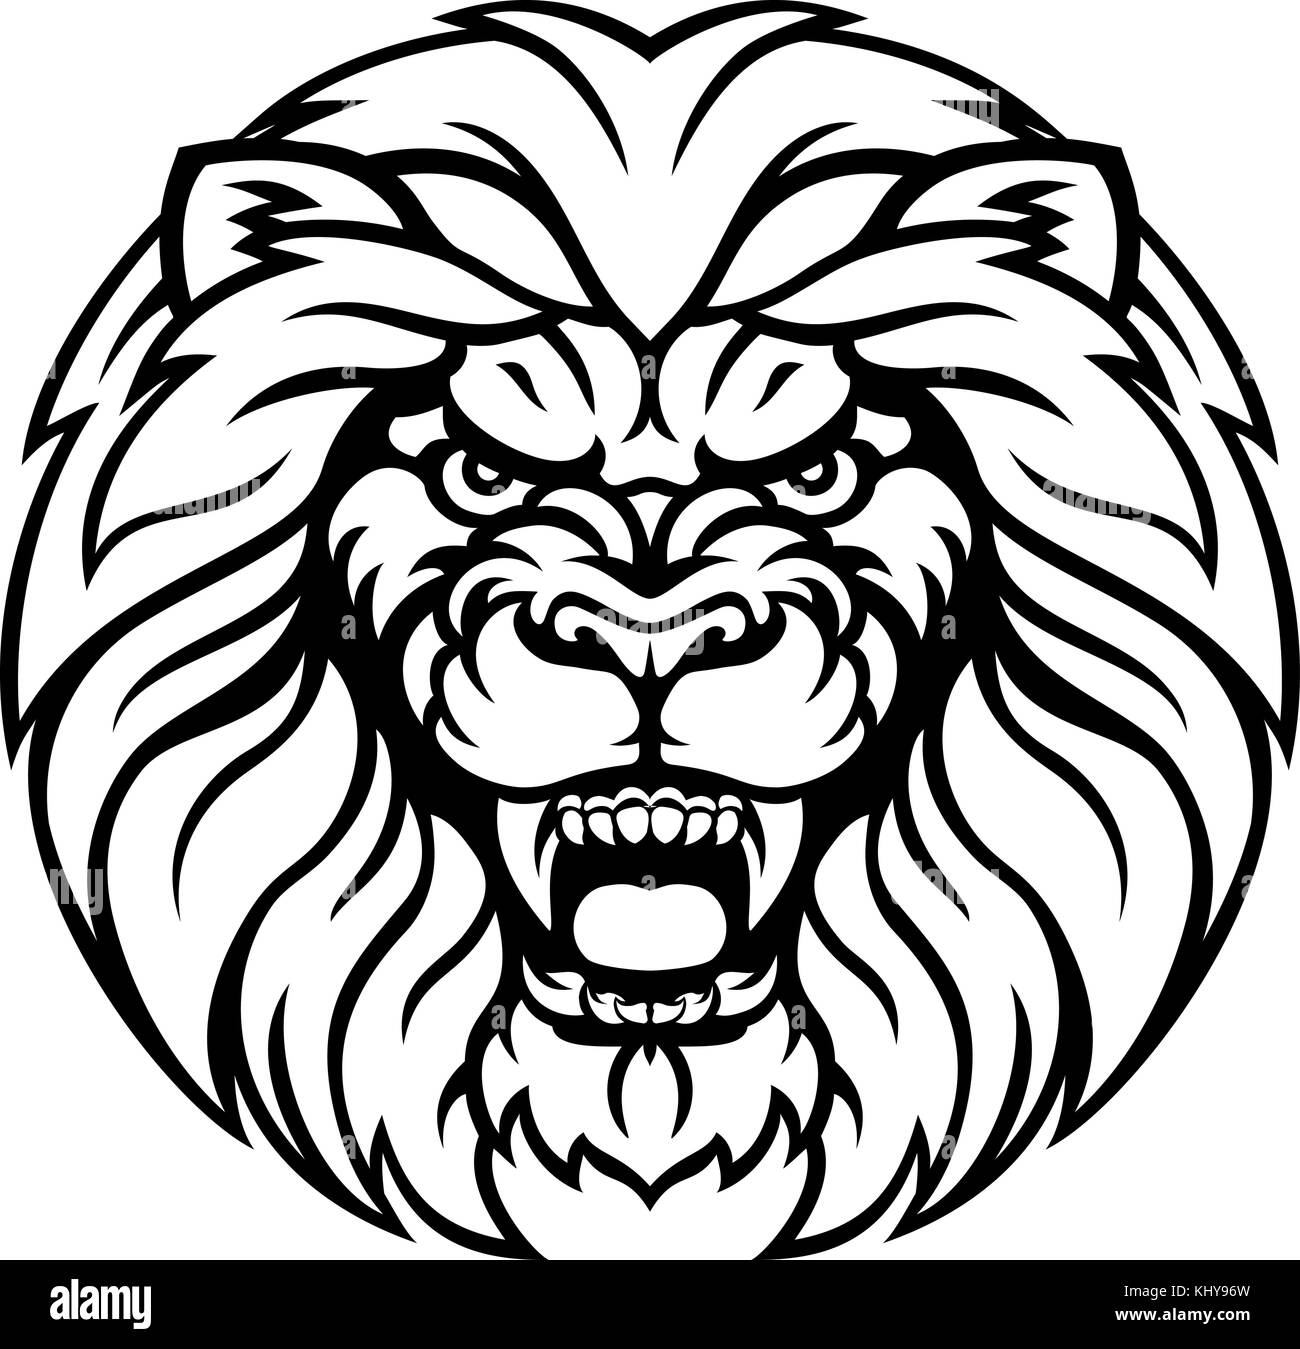 Lion Sports Mascot Angry Face - Stock Vector